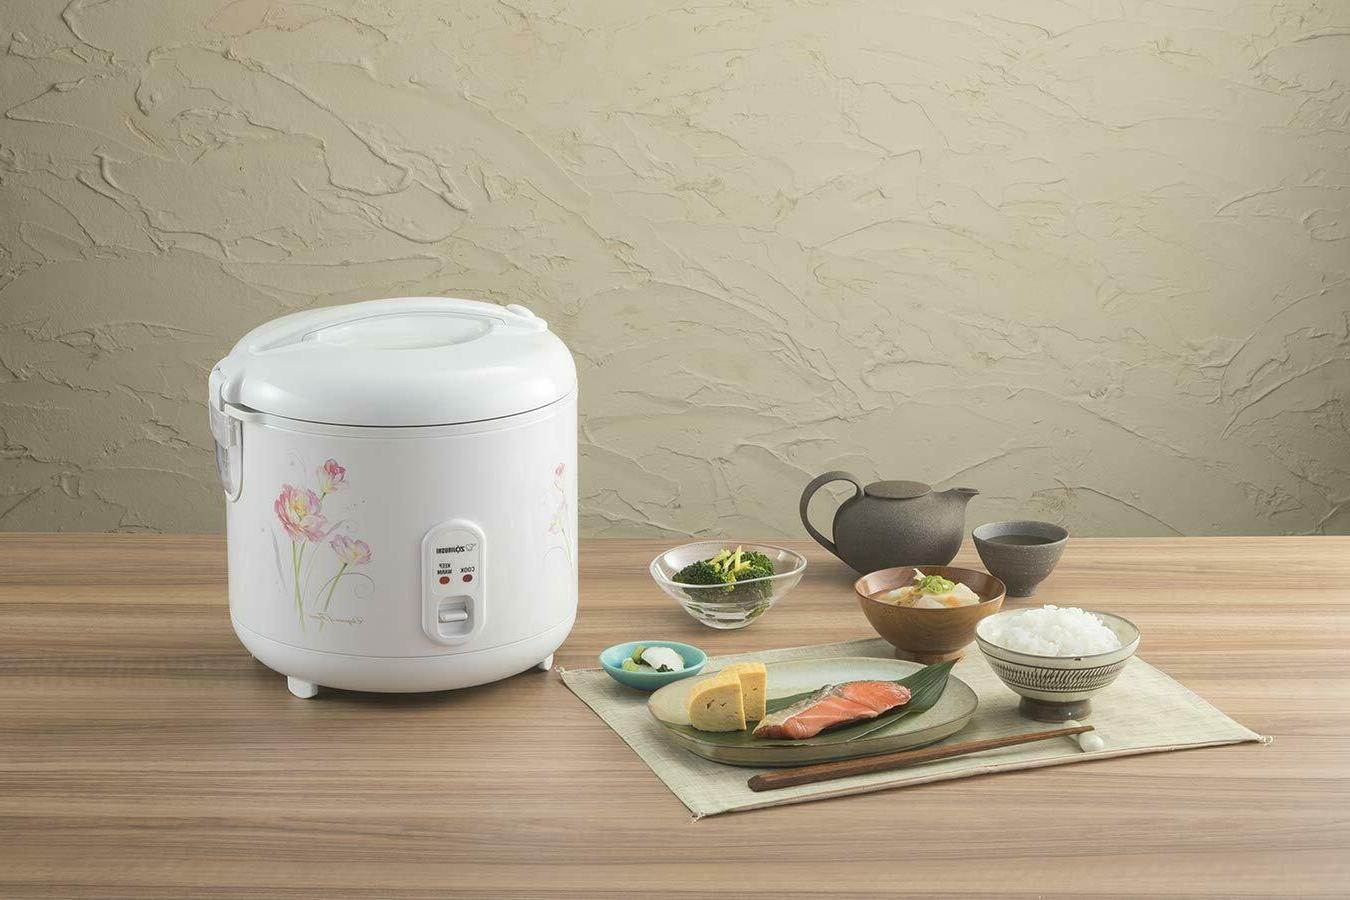 Zojirushi NS-RPC10FJ Rice and Warmer, 1.0-Liter, Tulip NEW CUP